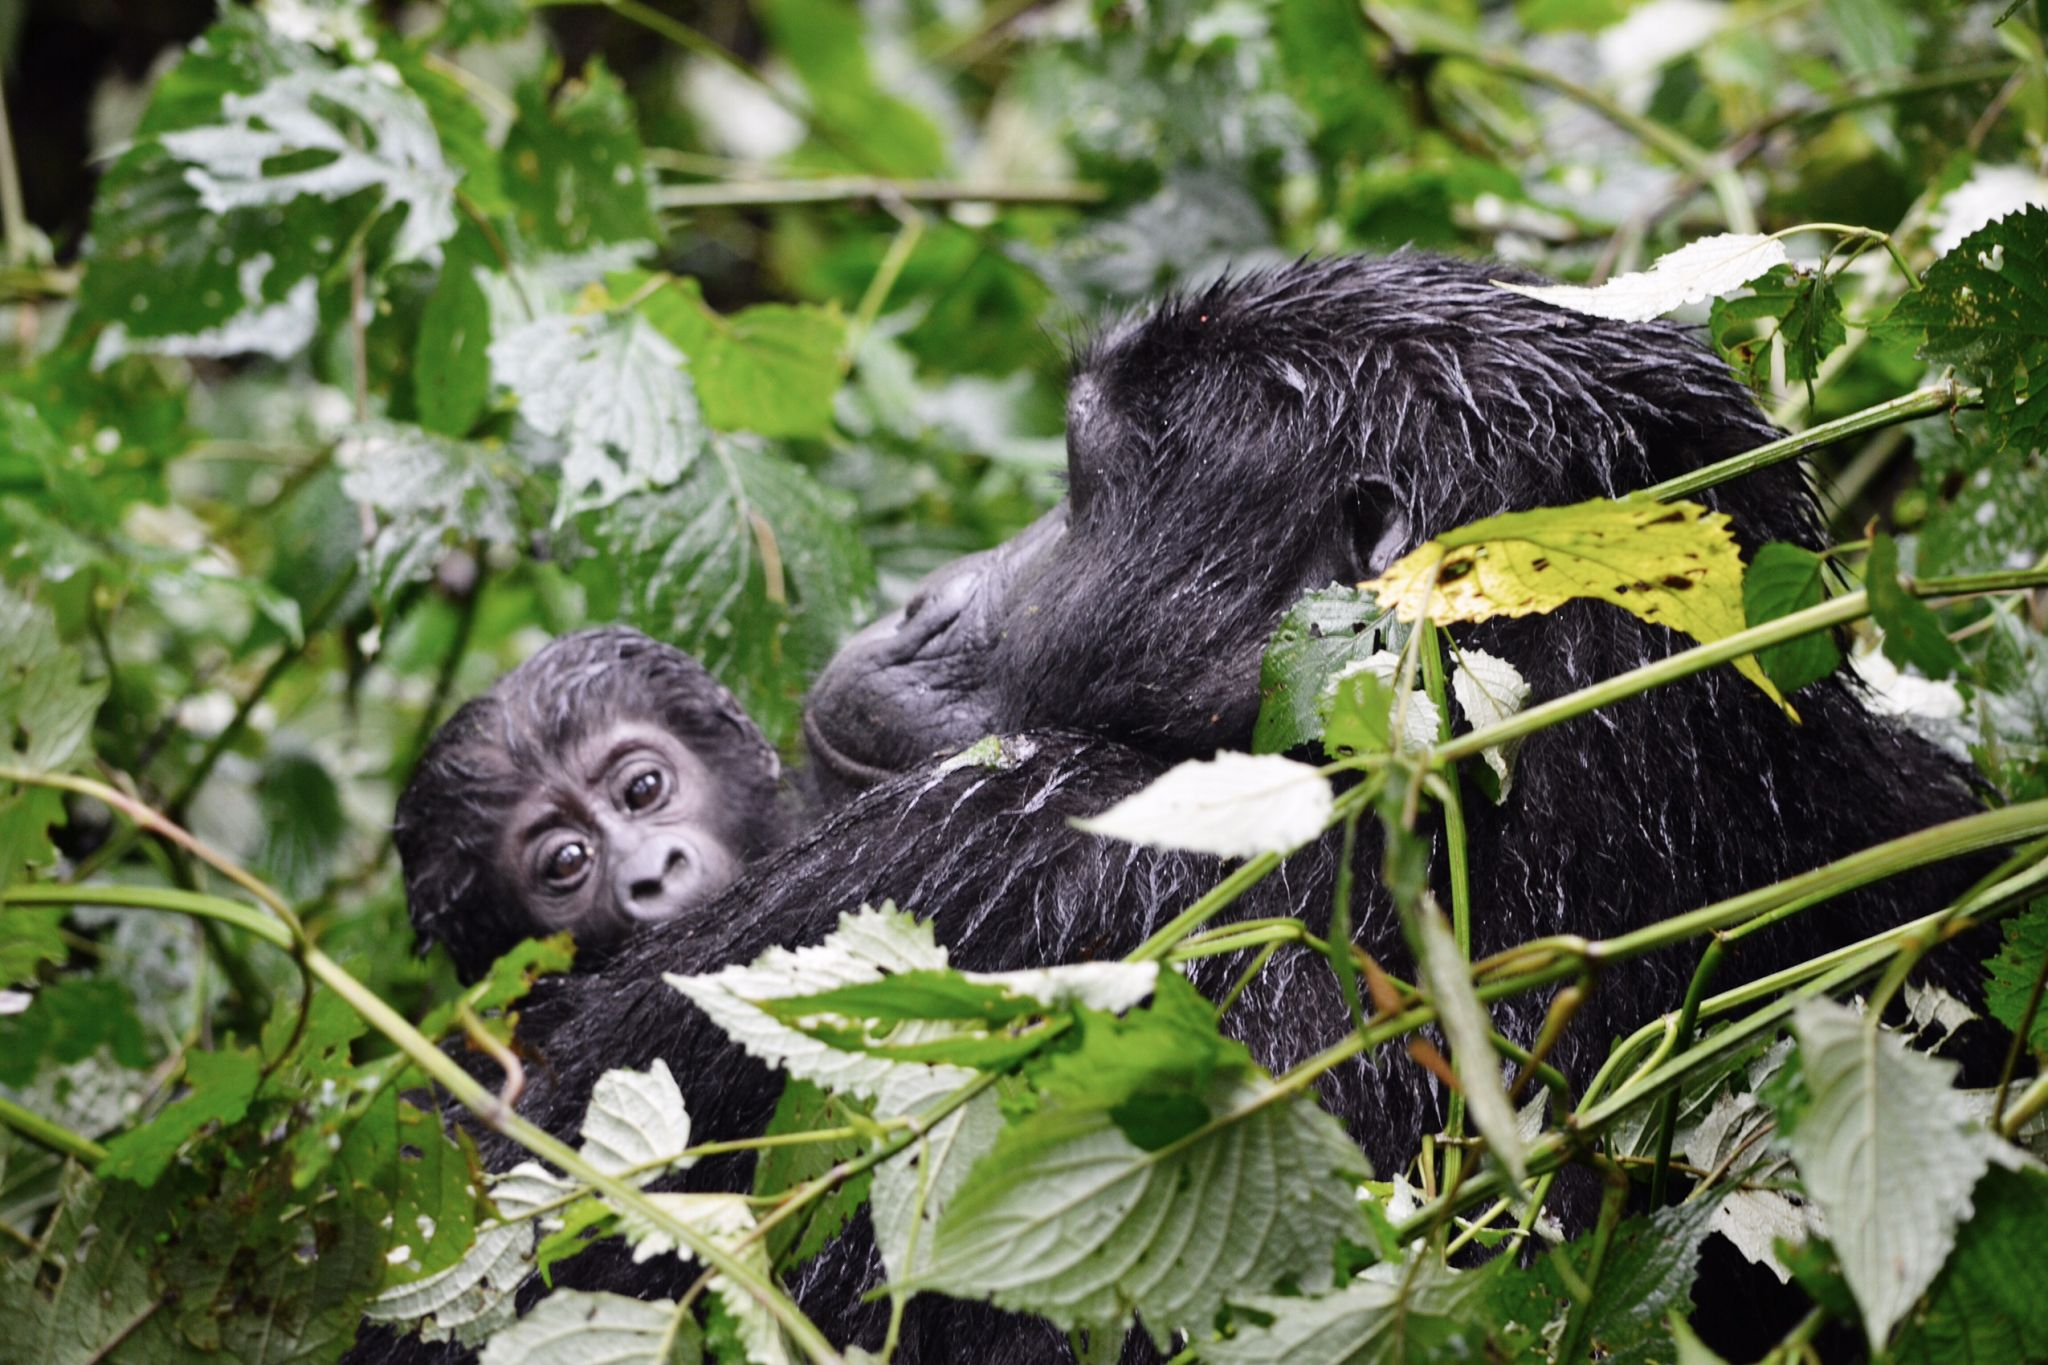 image of mother and infant gorilla